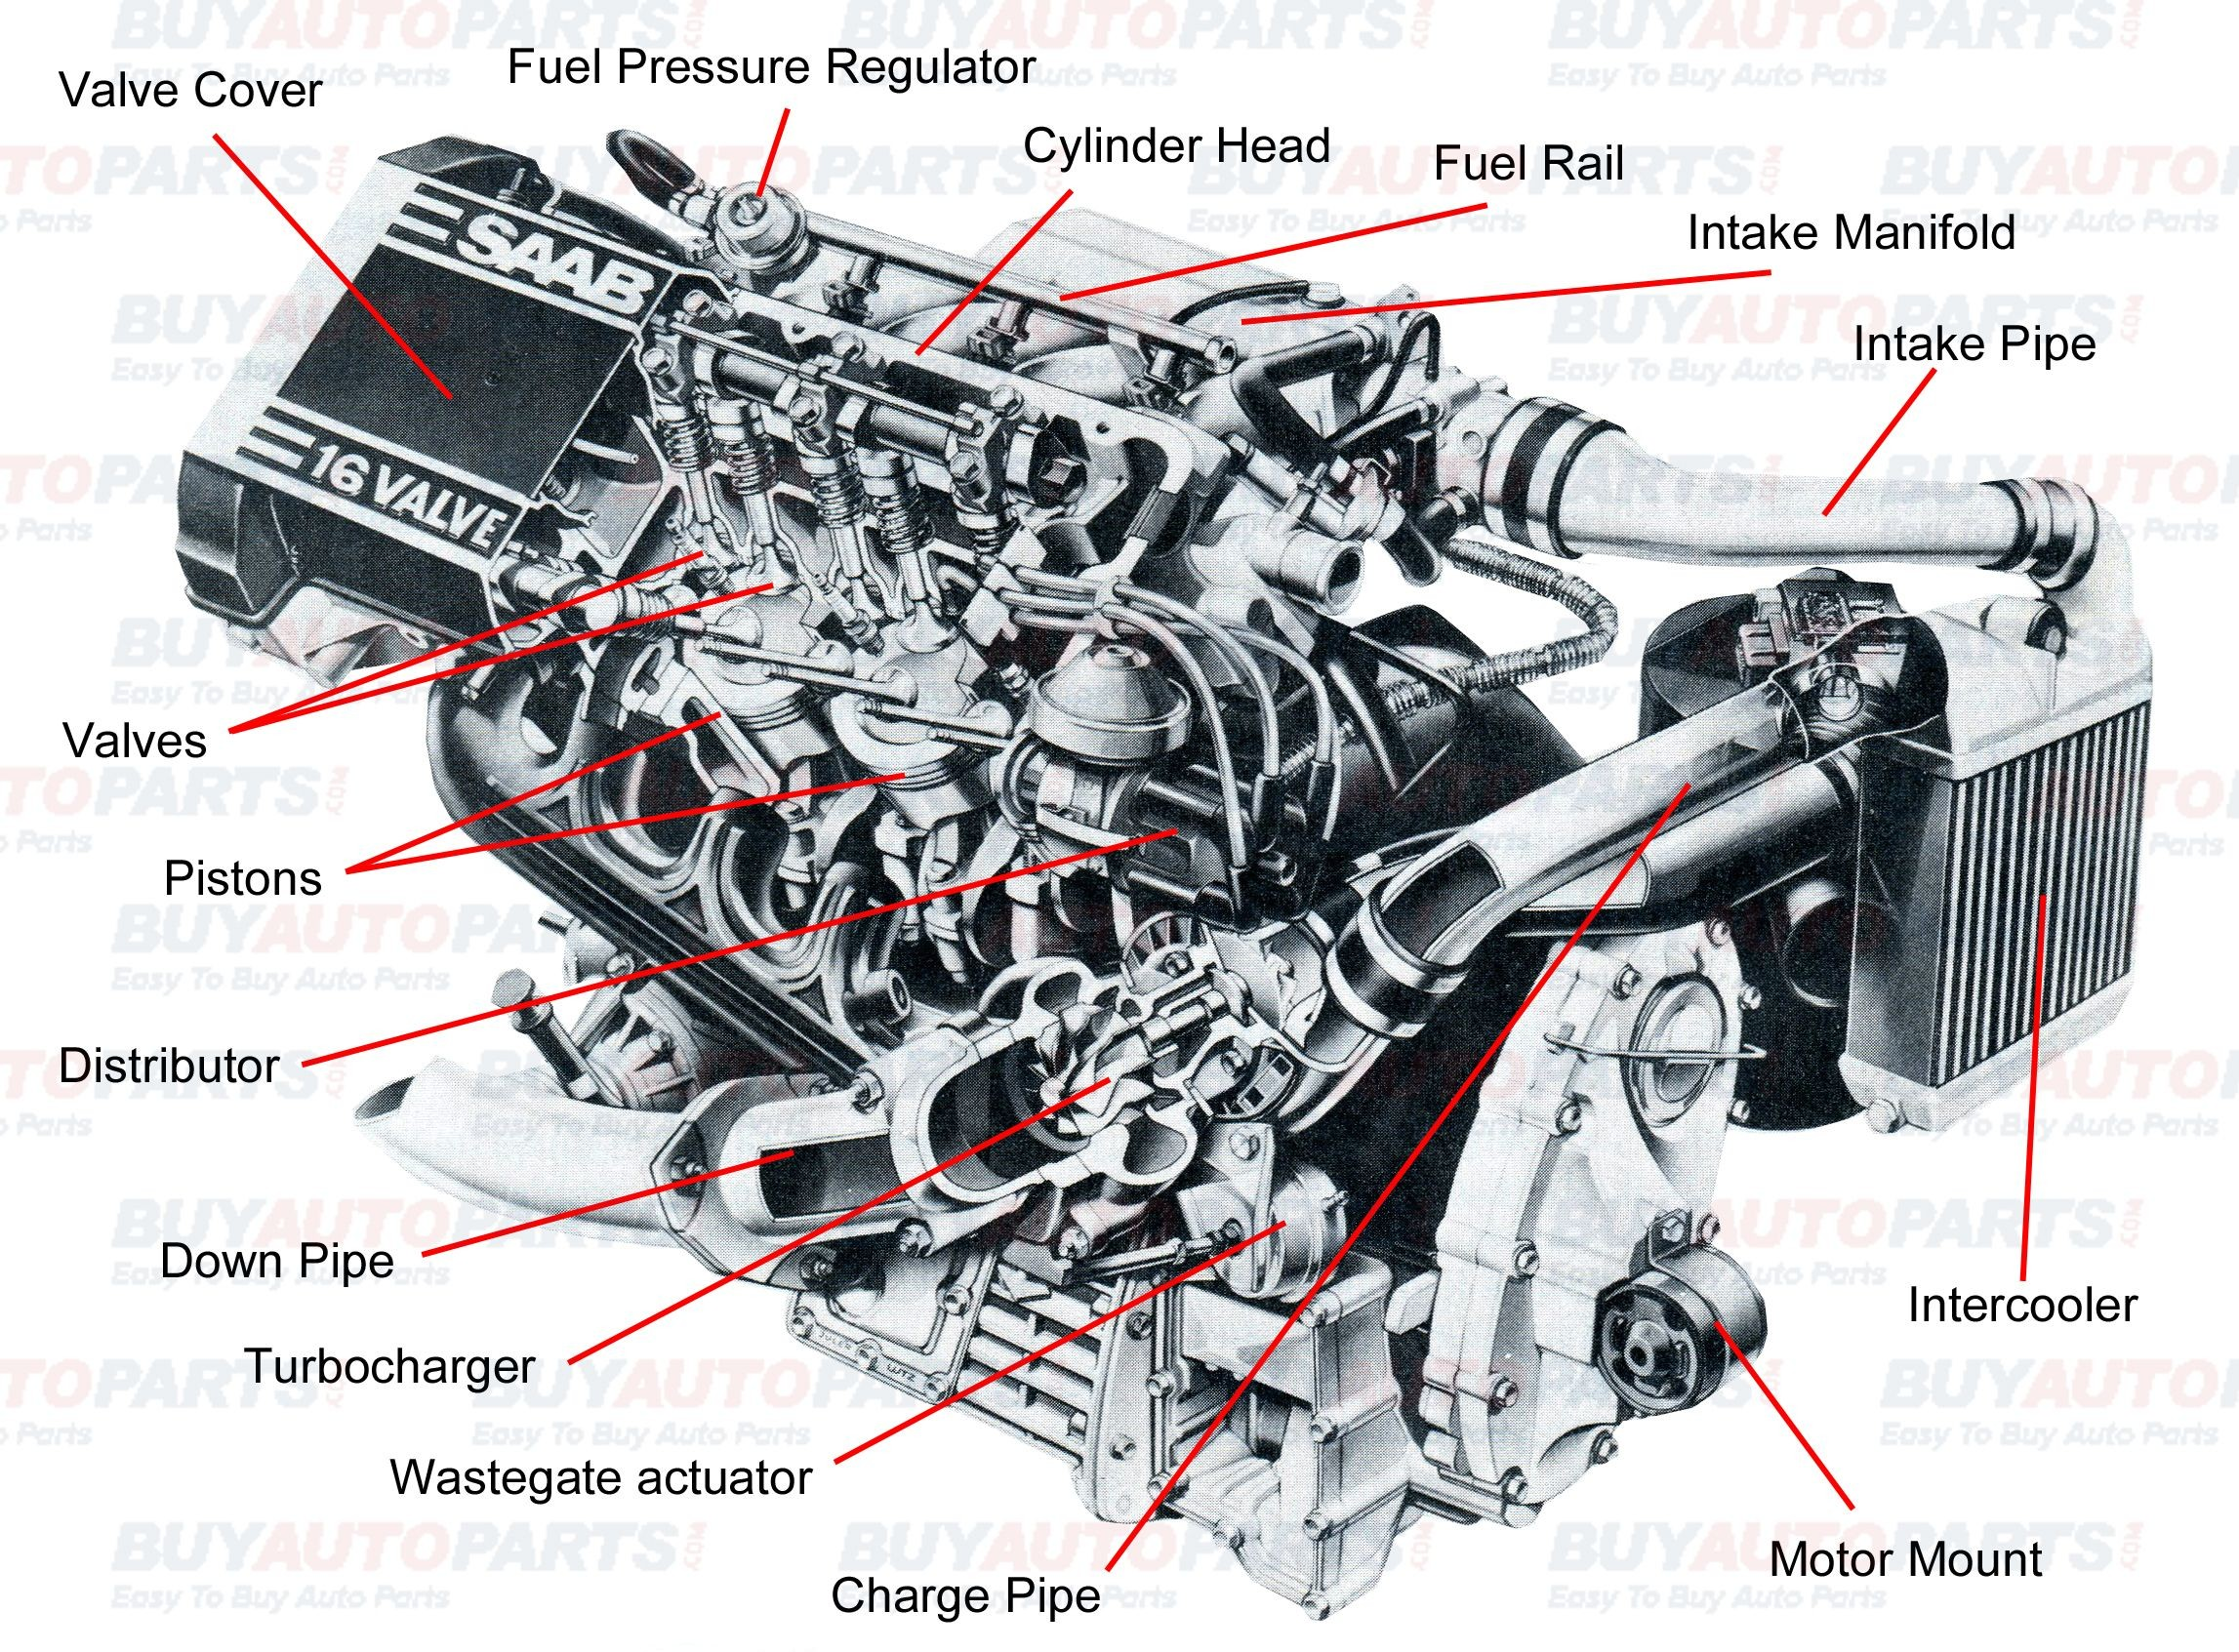 Parts Of A Car Wheel Diagram All Internal Bustion Engines Have the Same Basic Ponents the Of Parts Of A Car Wheel Diagram